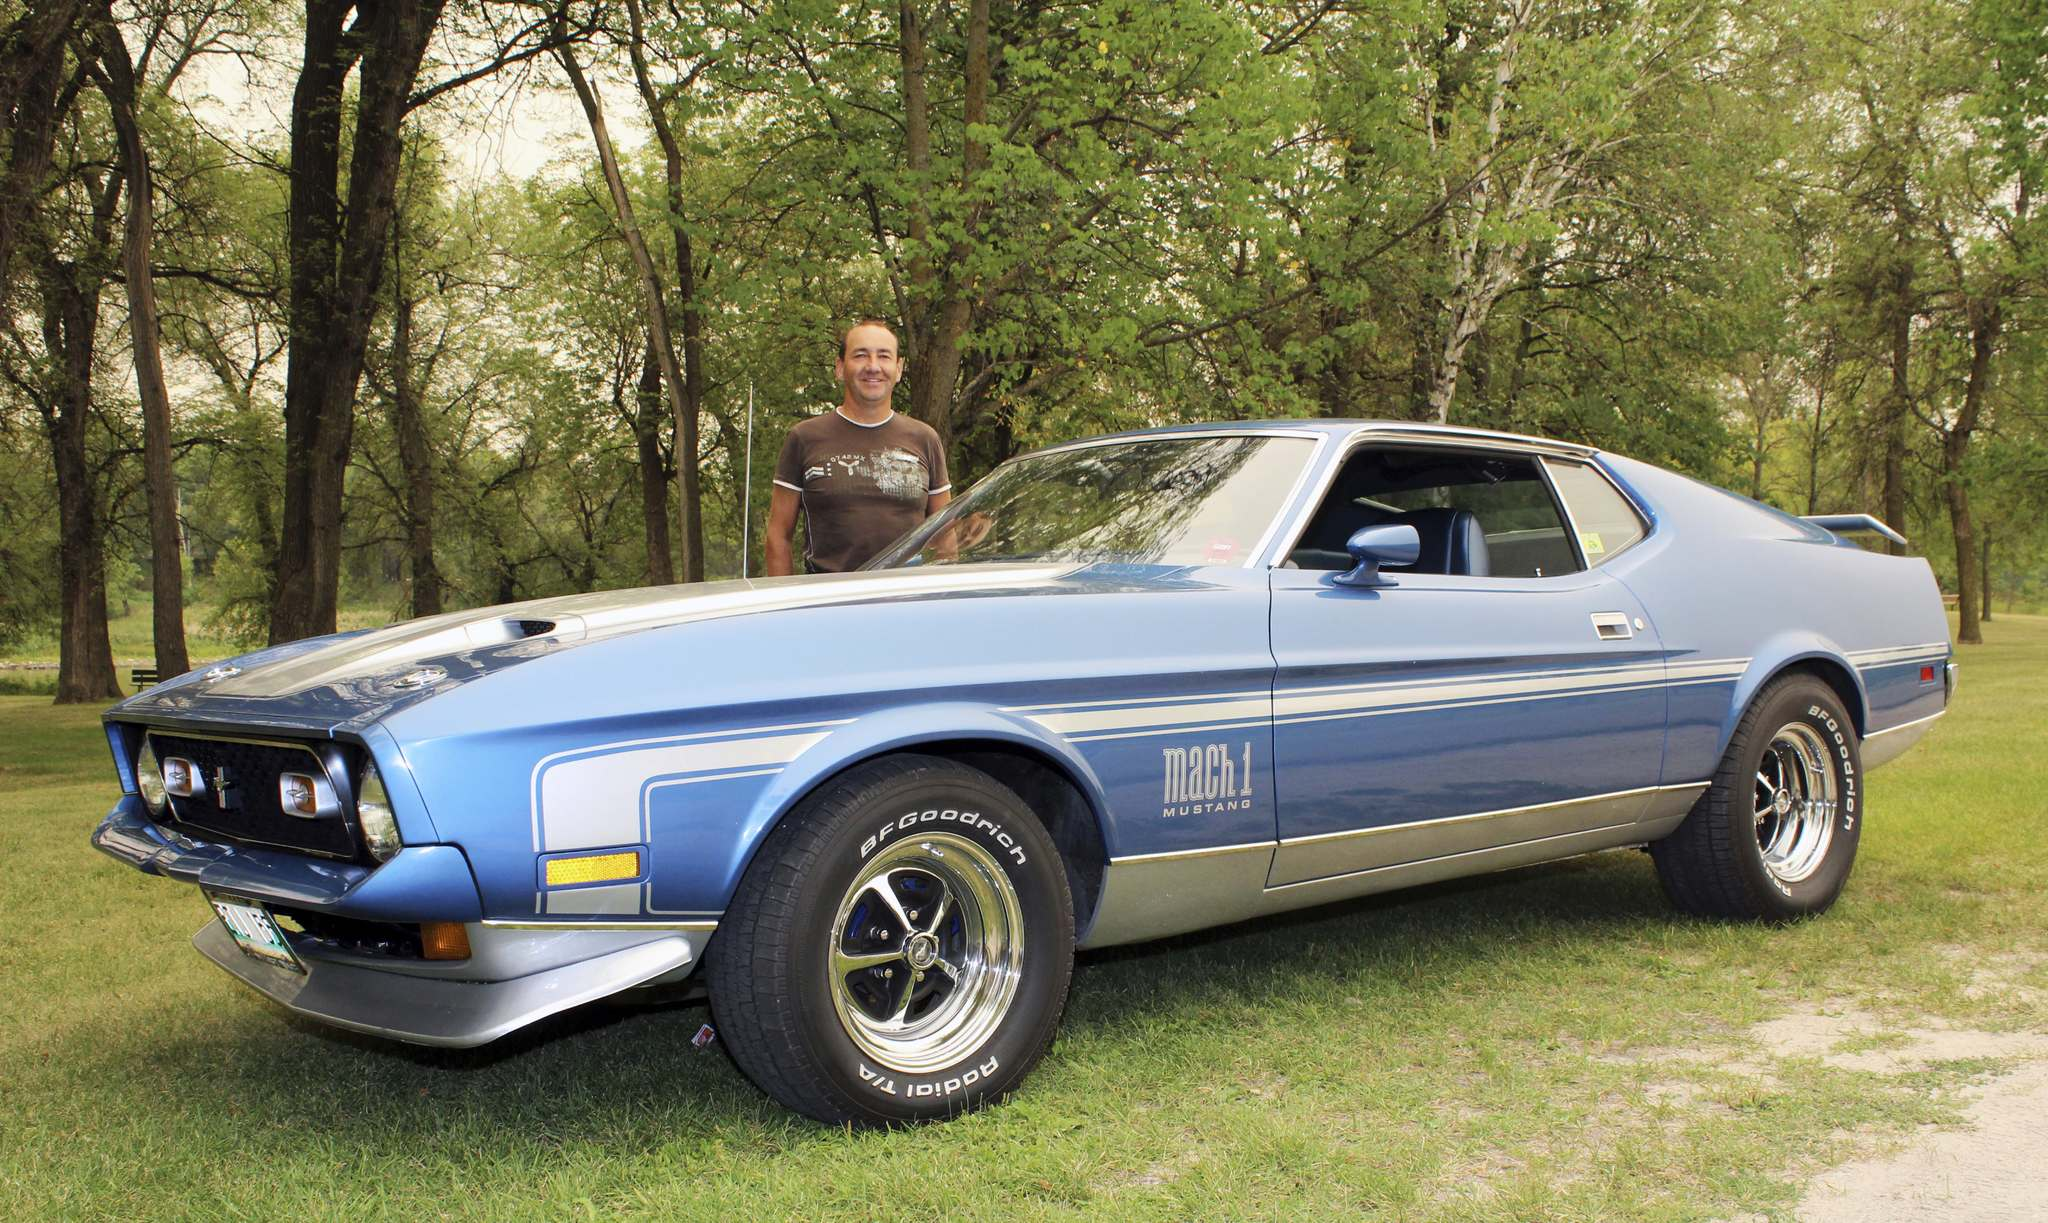 Photos by Larry D'Argis / Winnipeg Free PressDuncan McDougall was put on the trail of his 1971 Mustang Mach I in 2006 after a conversation with a friend. The car was an original, rust-free vehicle in good condition with a rebuilt engine when McDougall bought it.